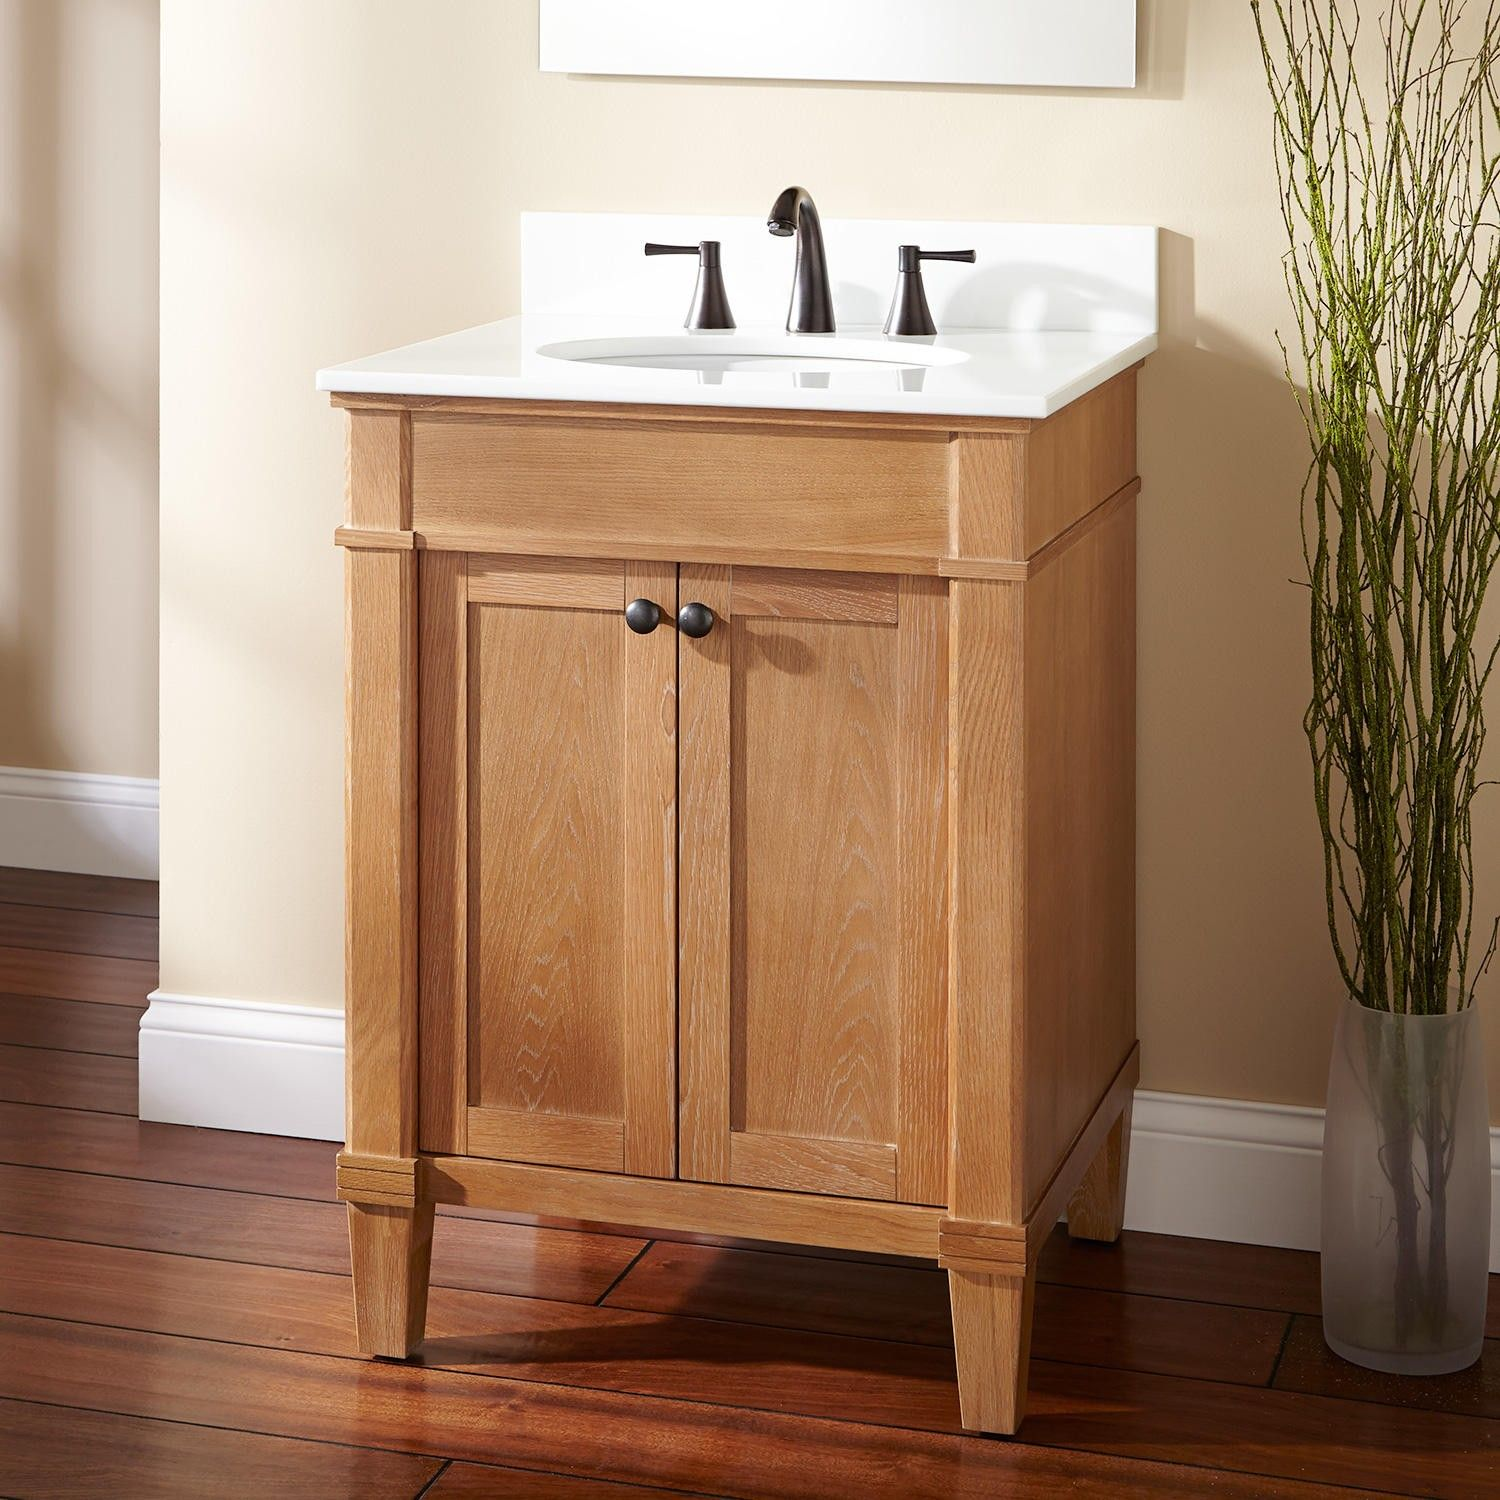 Marilla Vanity For Undermount Sink  Leave Natural Or Paint?